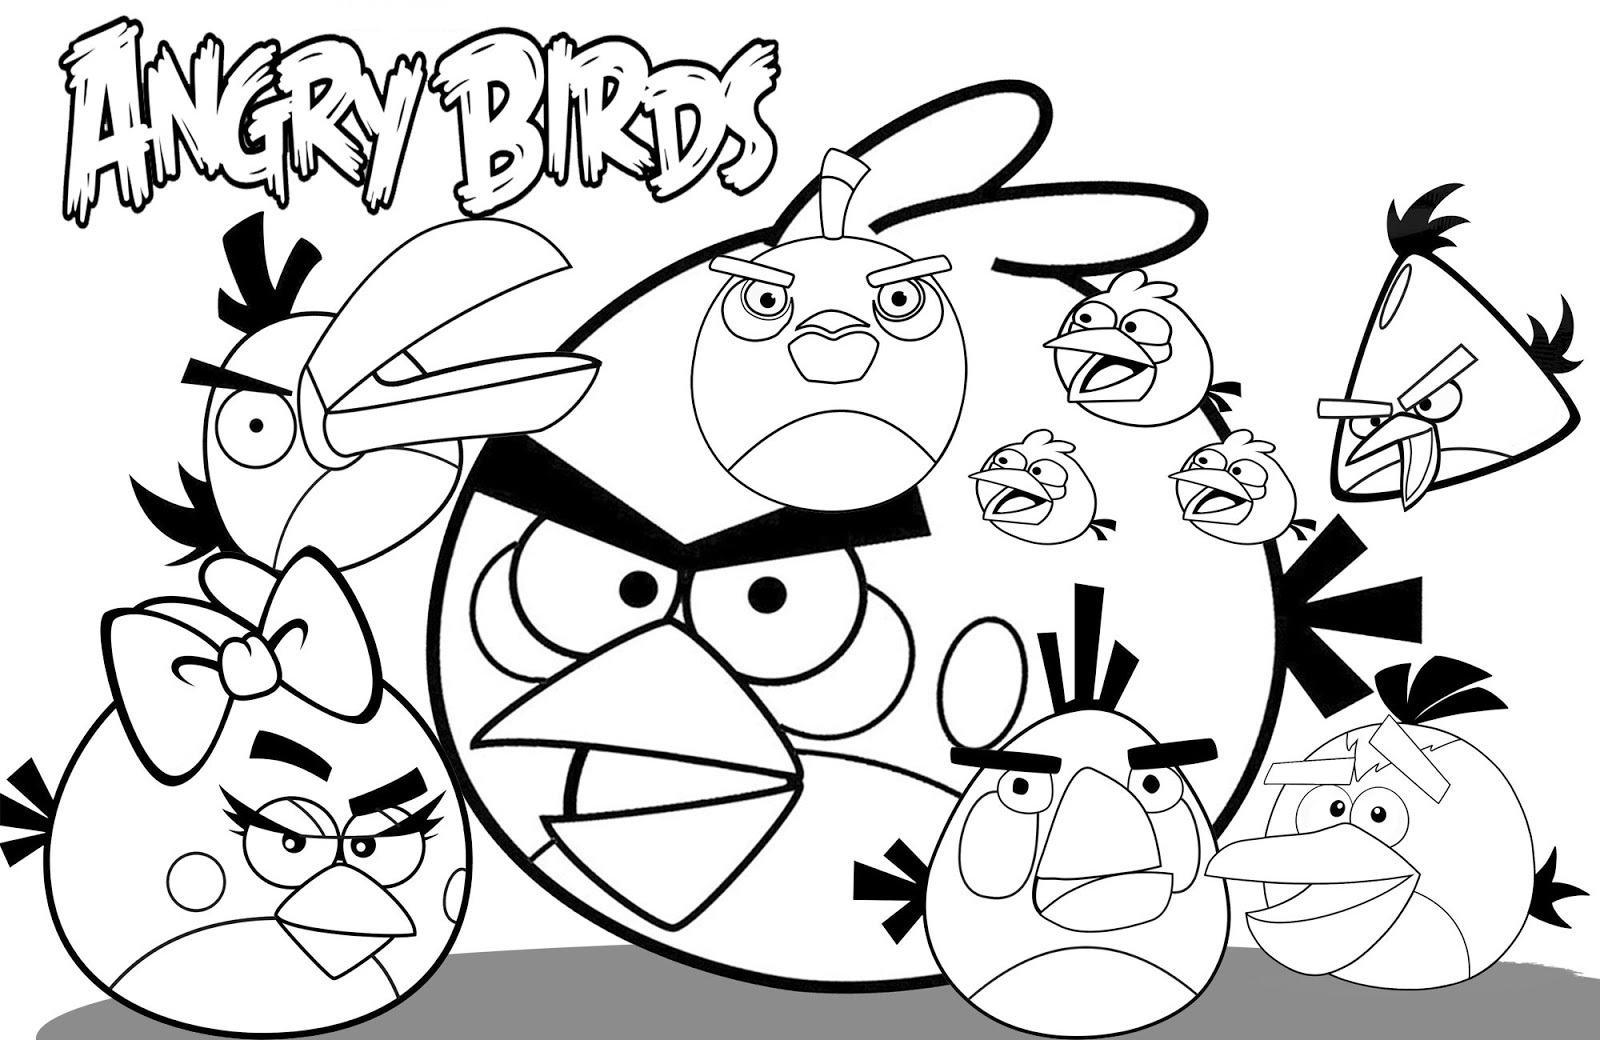 angry birds printable coloring pages free printable angry bird coloring pages for kids angry coloring printable pages birds